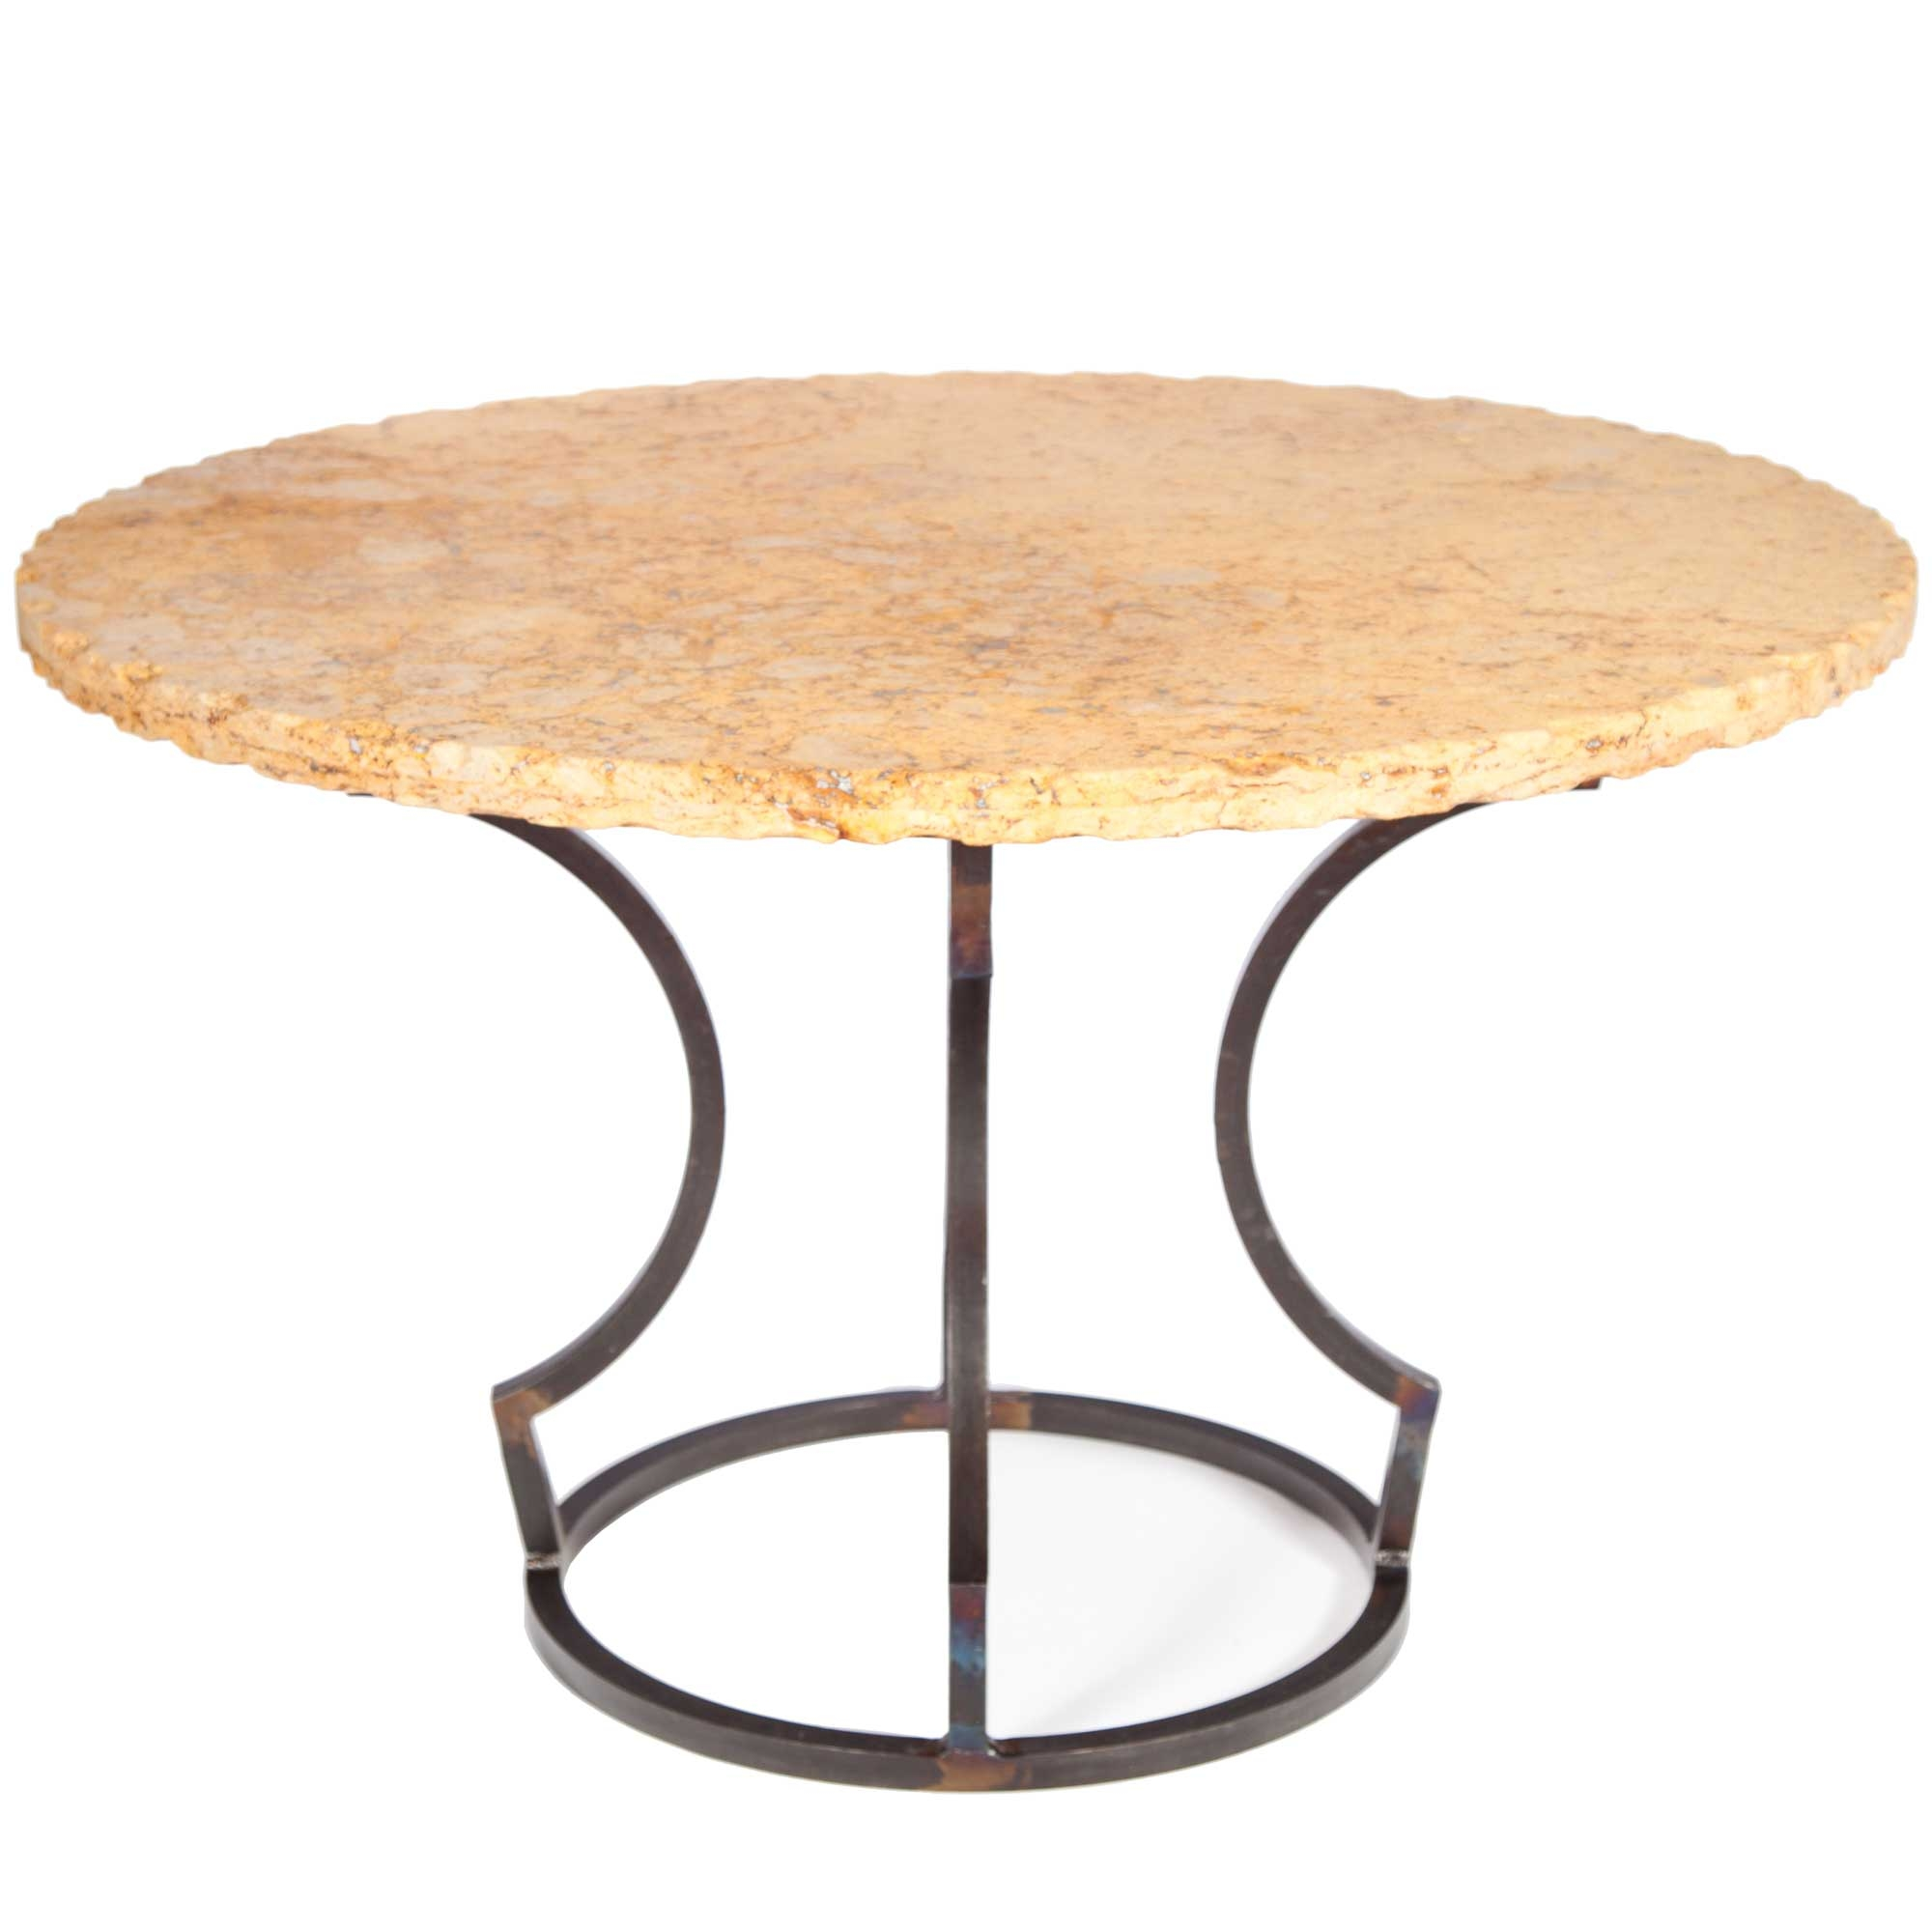 Dining Table With Wrought Iron Base And 48 Round Marble Table Top